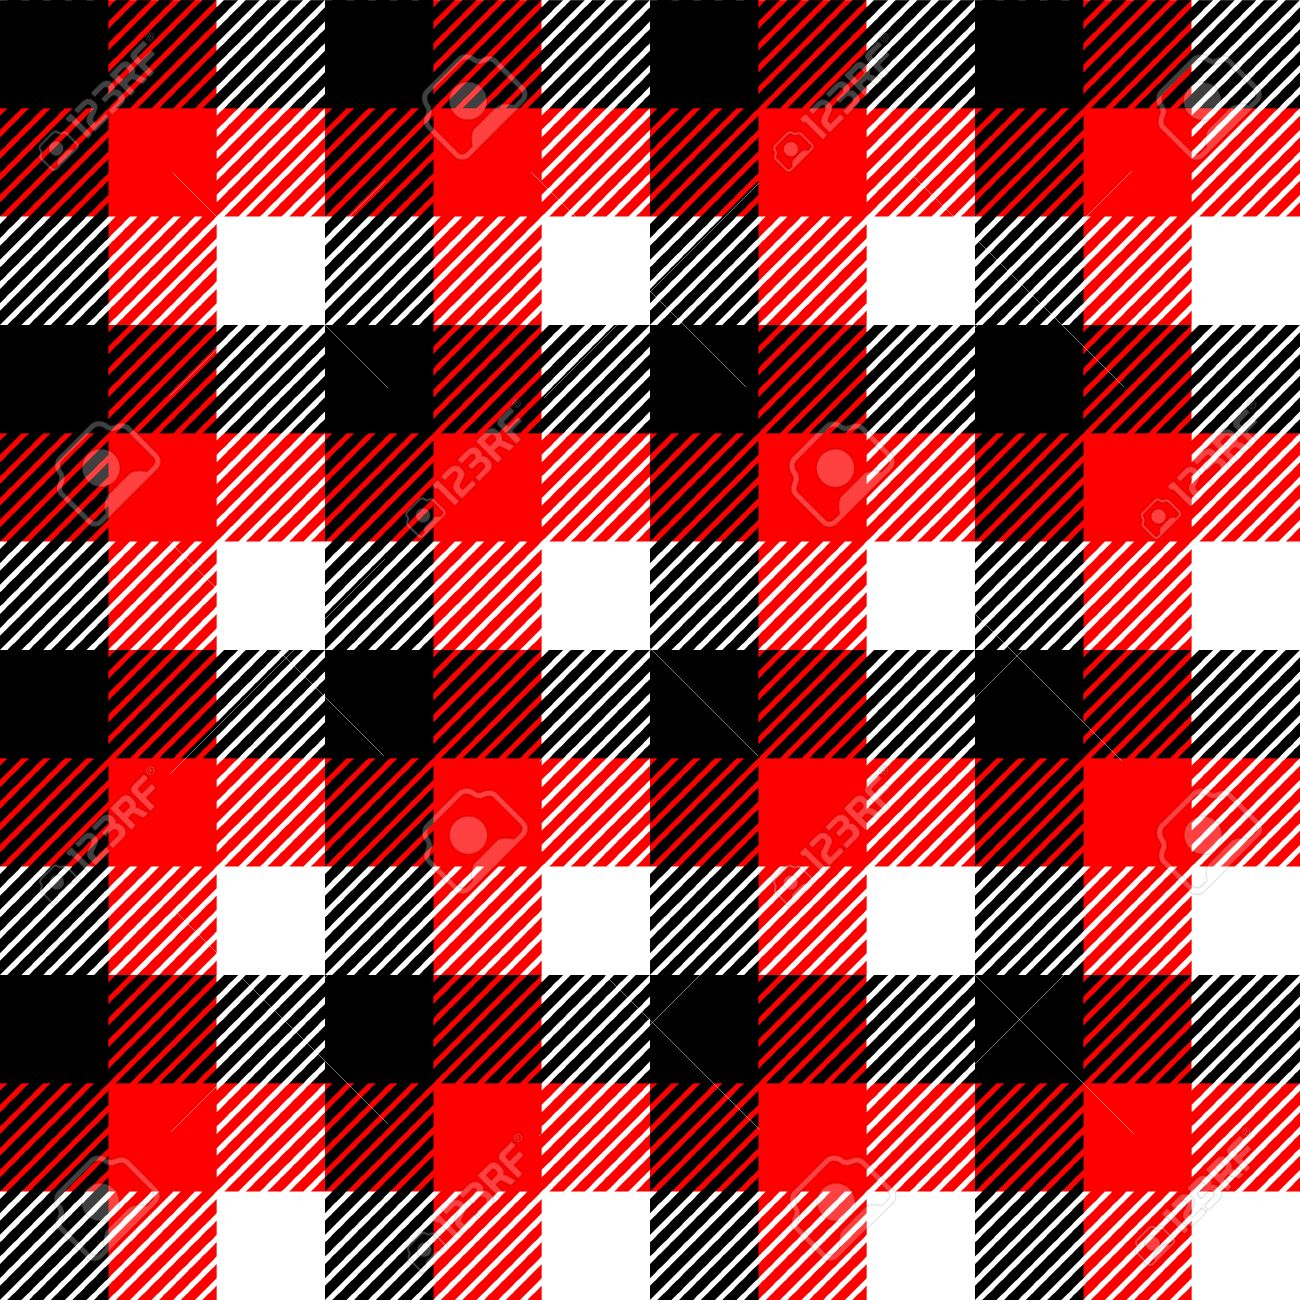 Checkered Gingham Fabric Seamless Pattern In Black White And